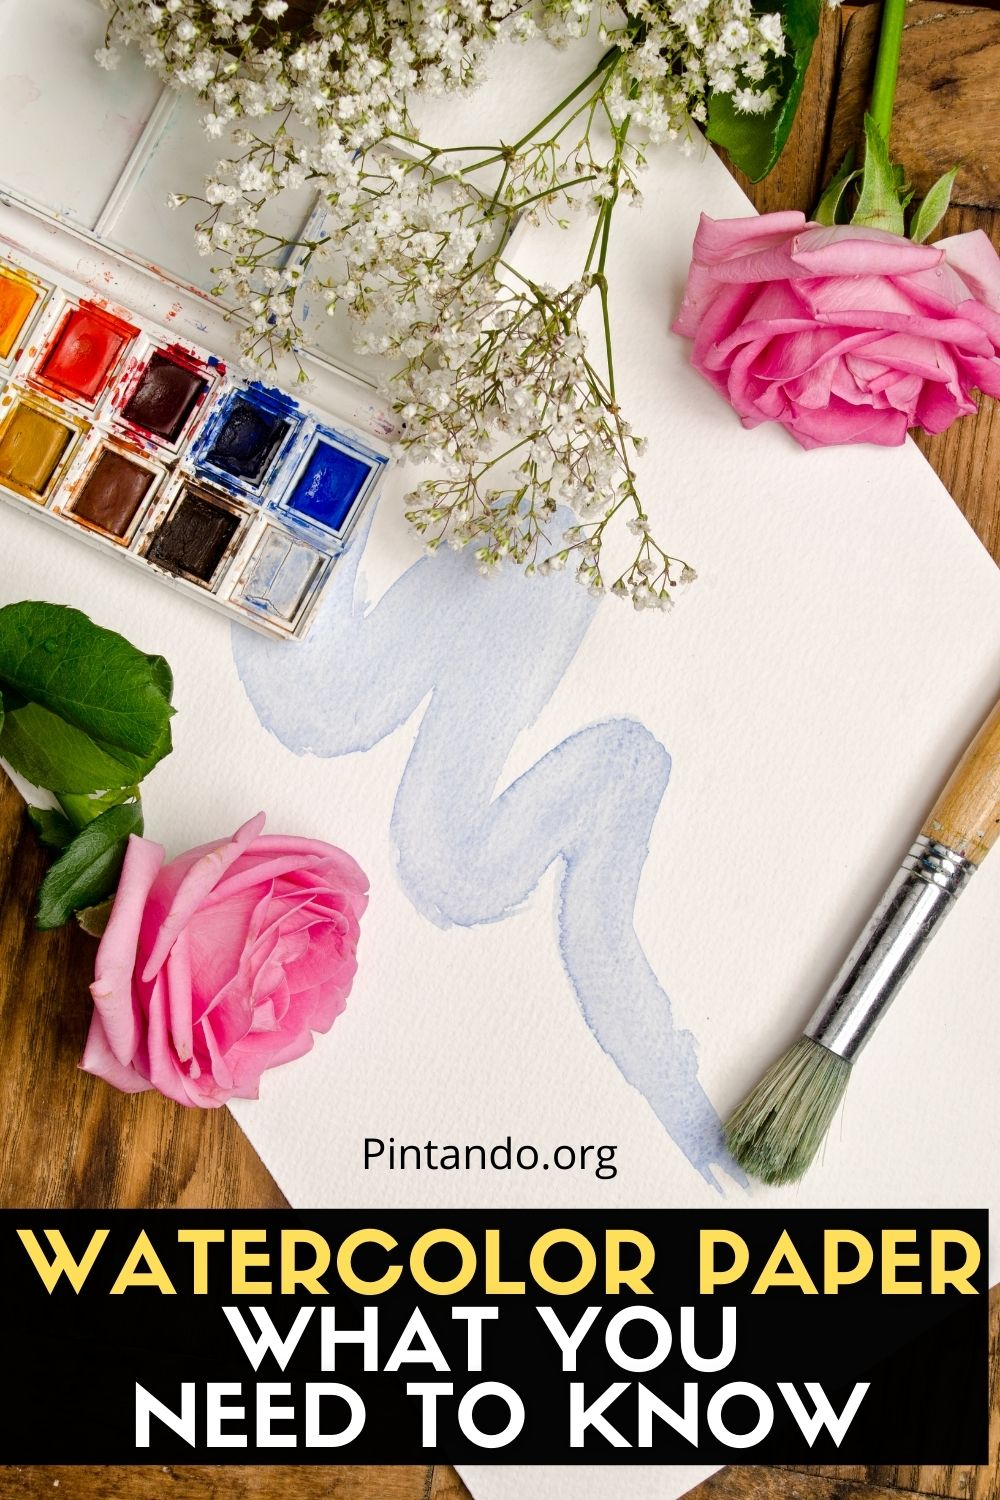 WATERCOLOR PAPER WHAT YOU NEED TO KNOW